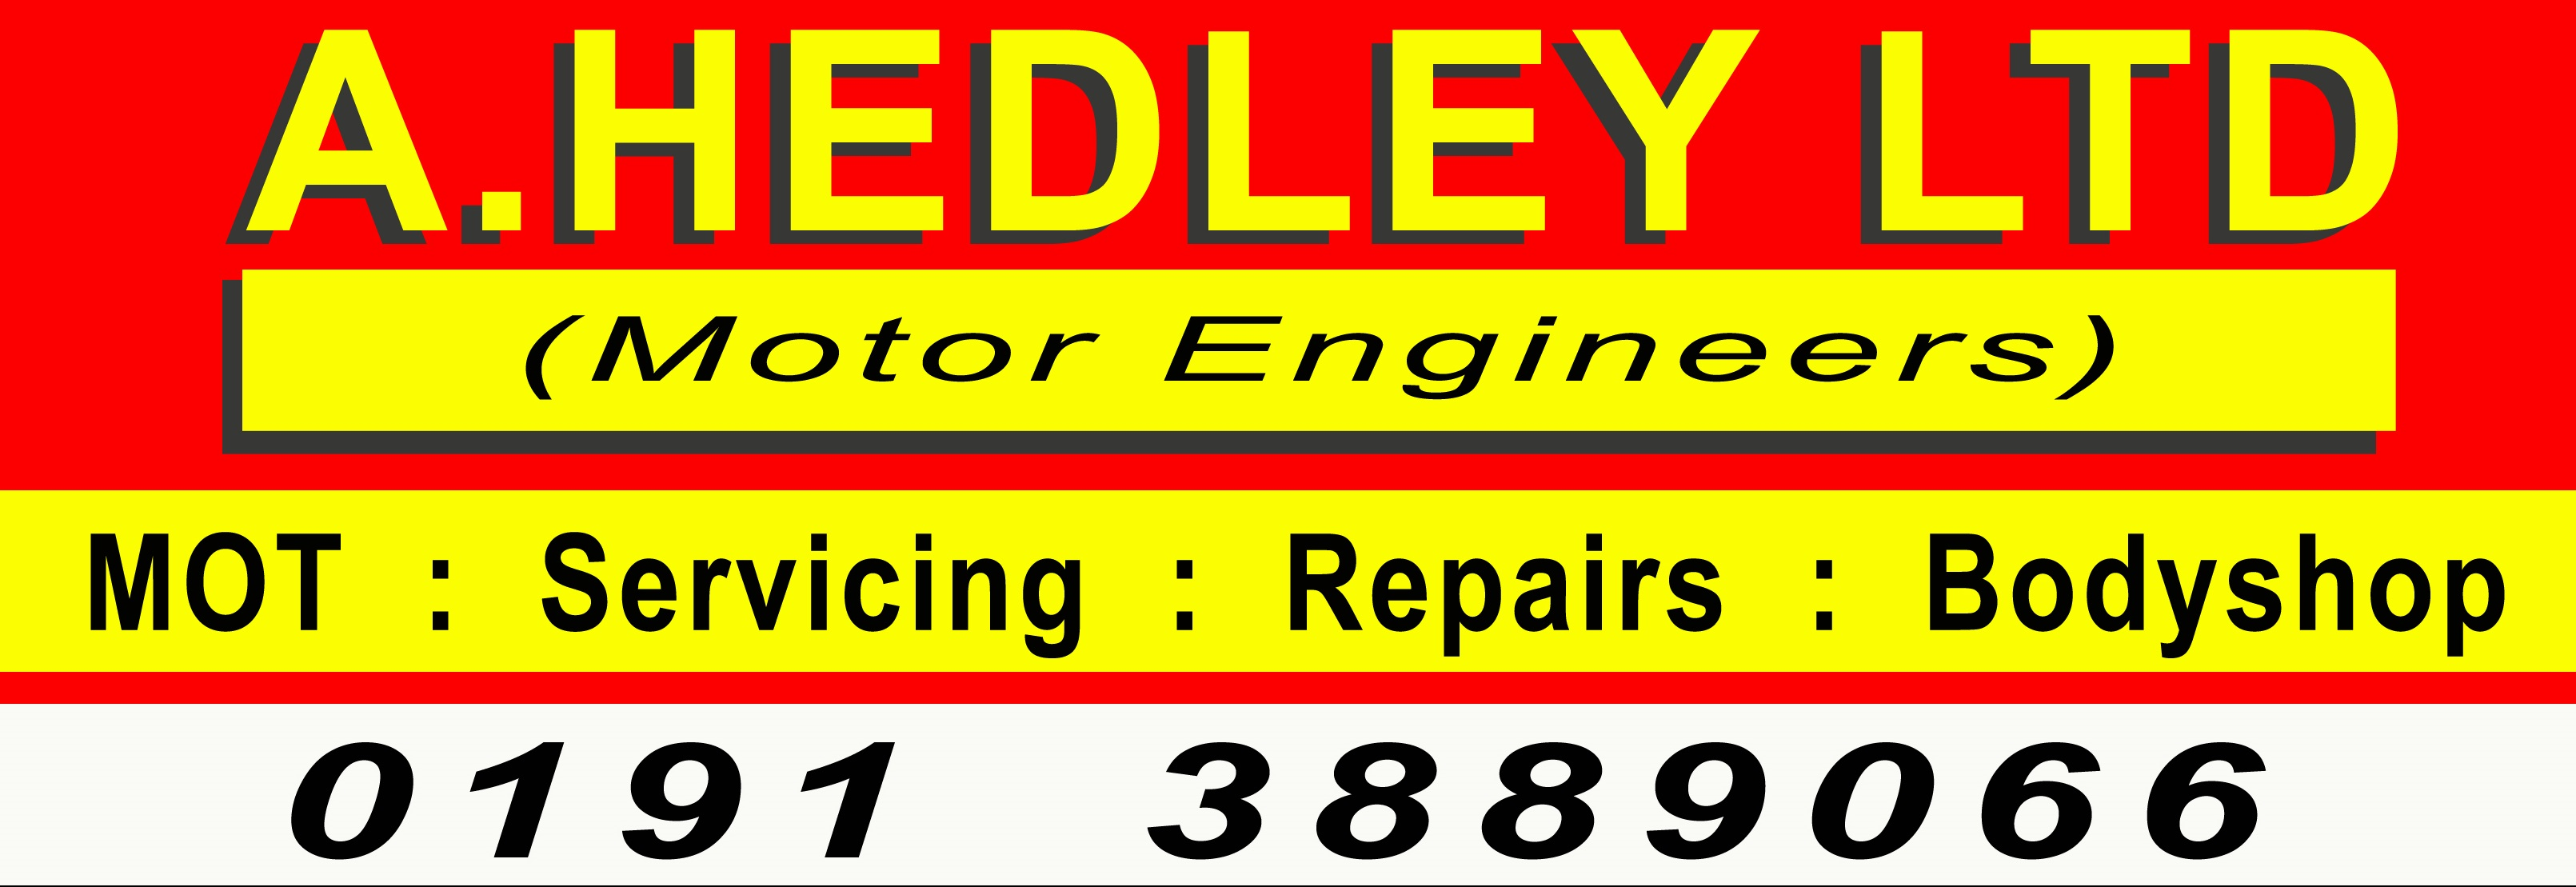 A HEDLEY (MOTOR ENGINEERS) LTD